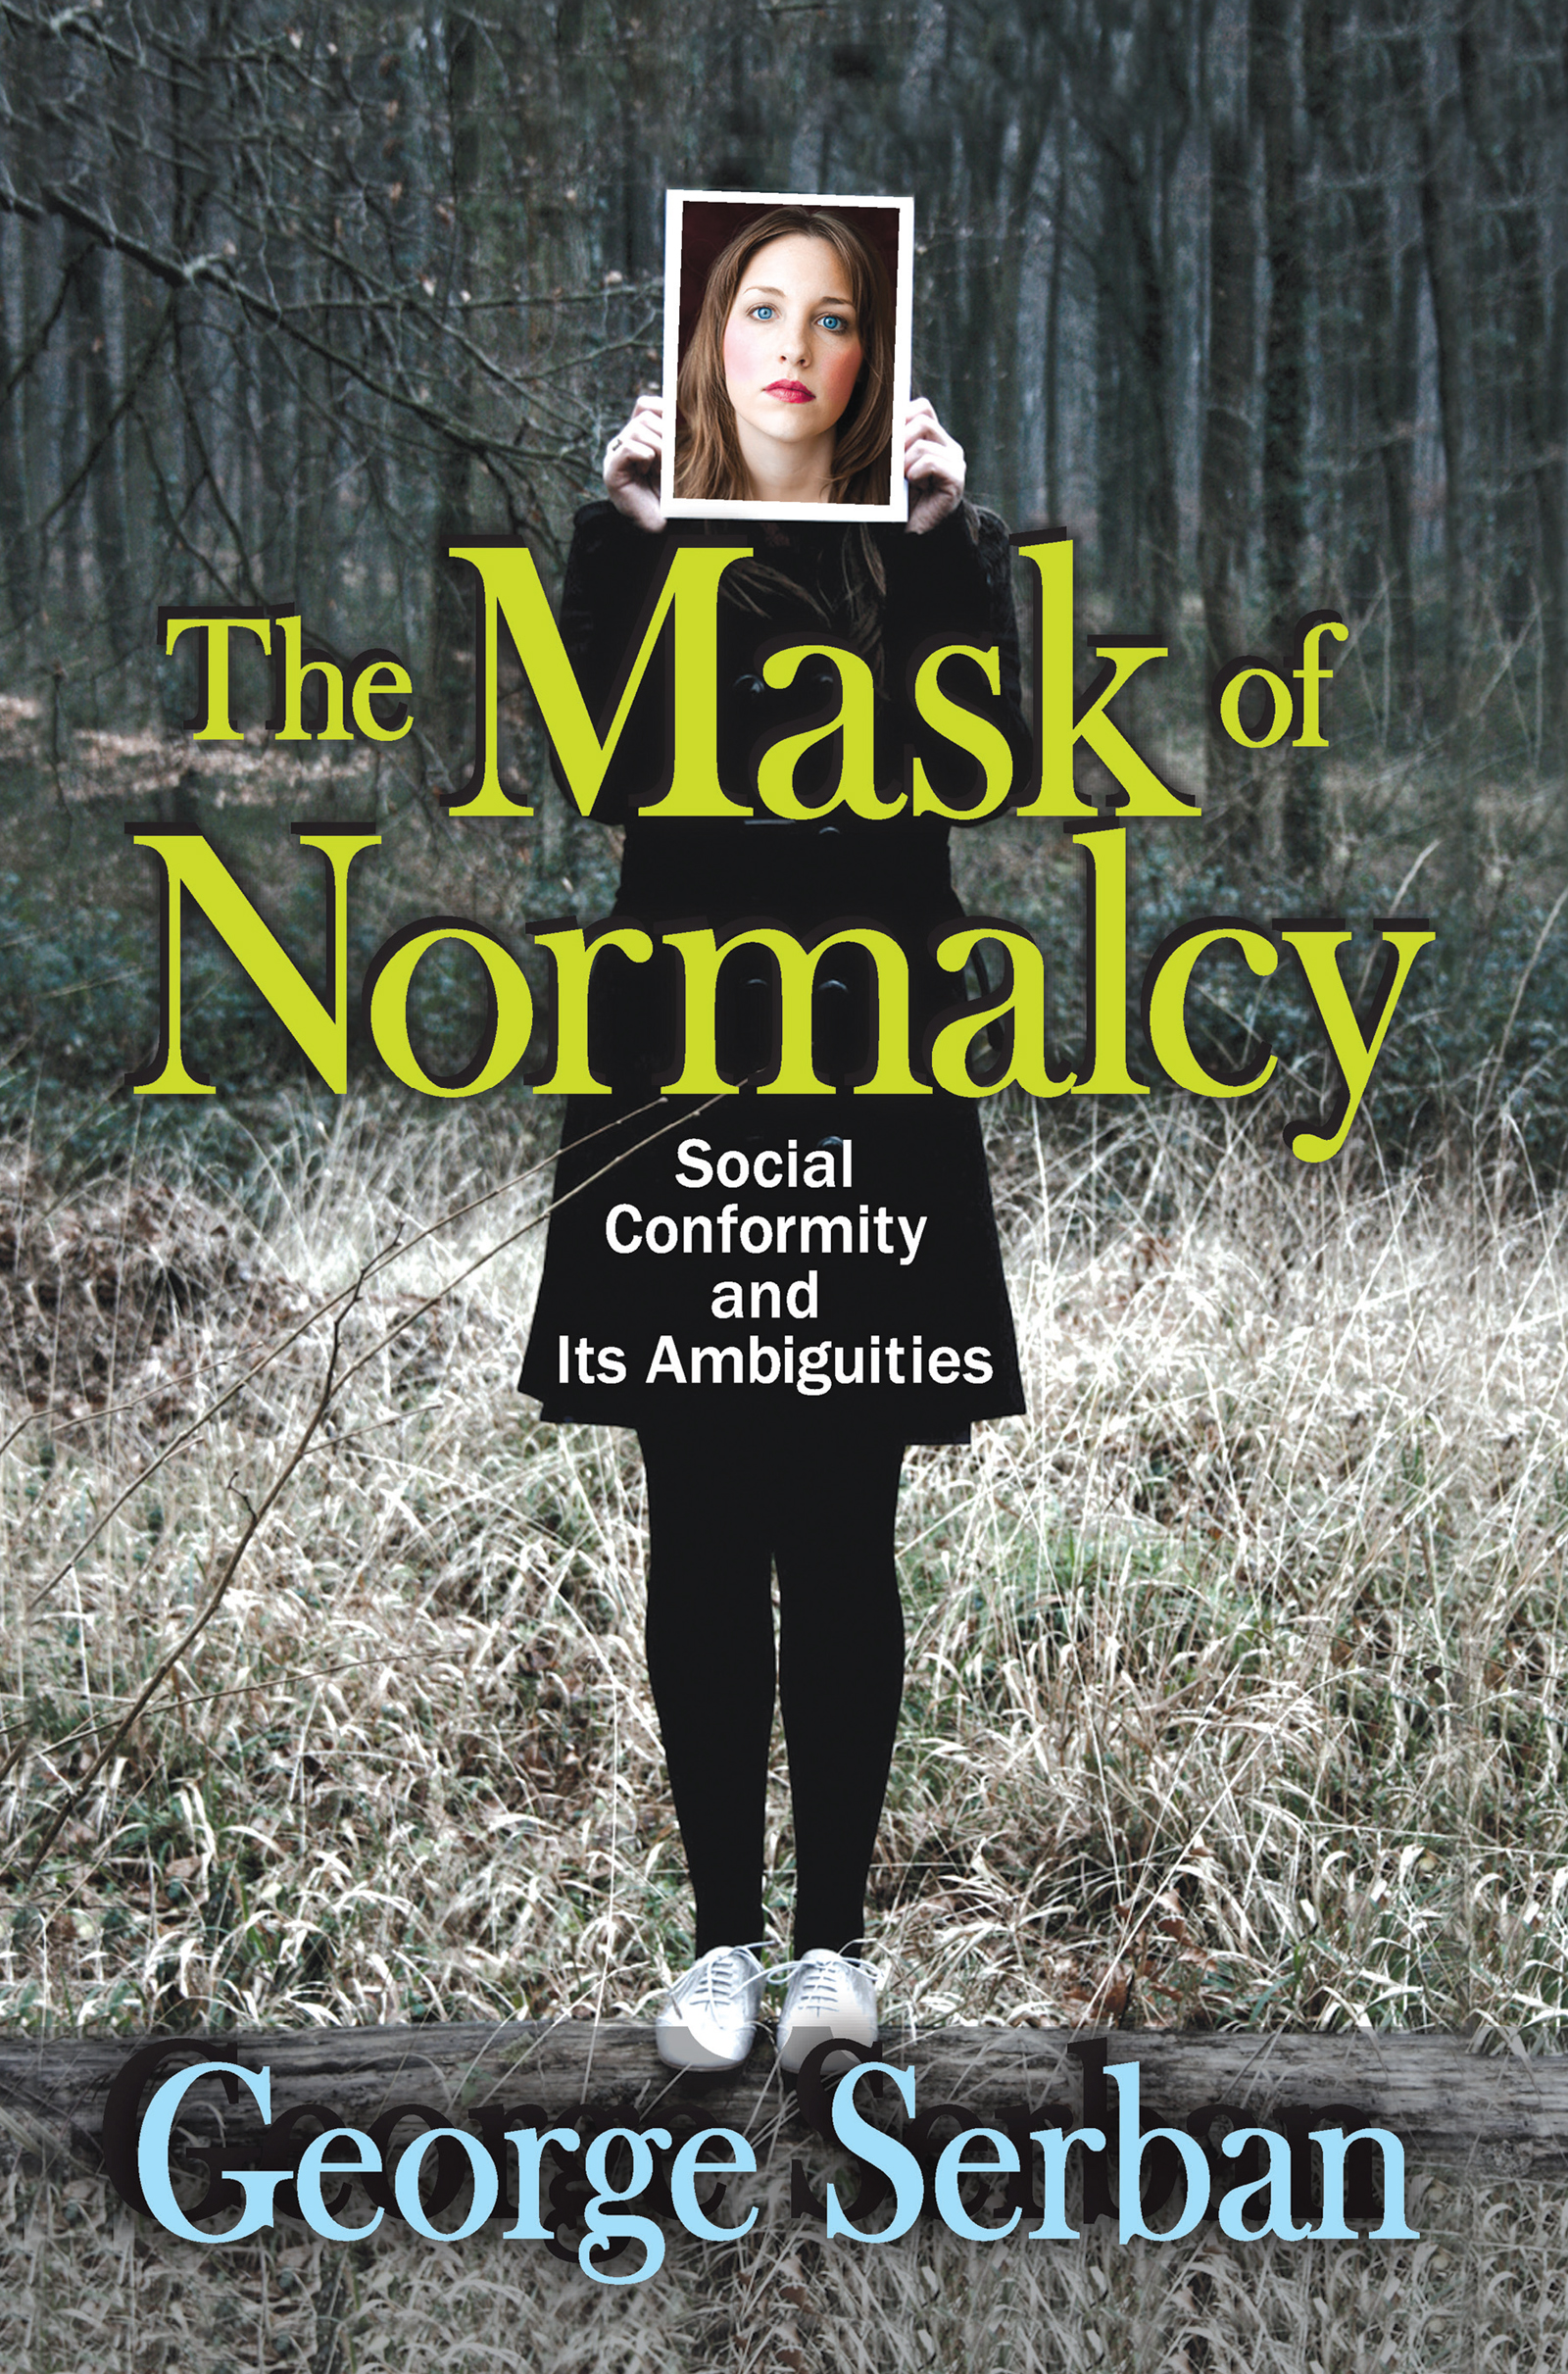 The Mask of Normalcy